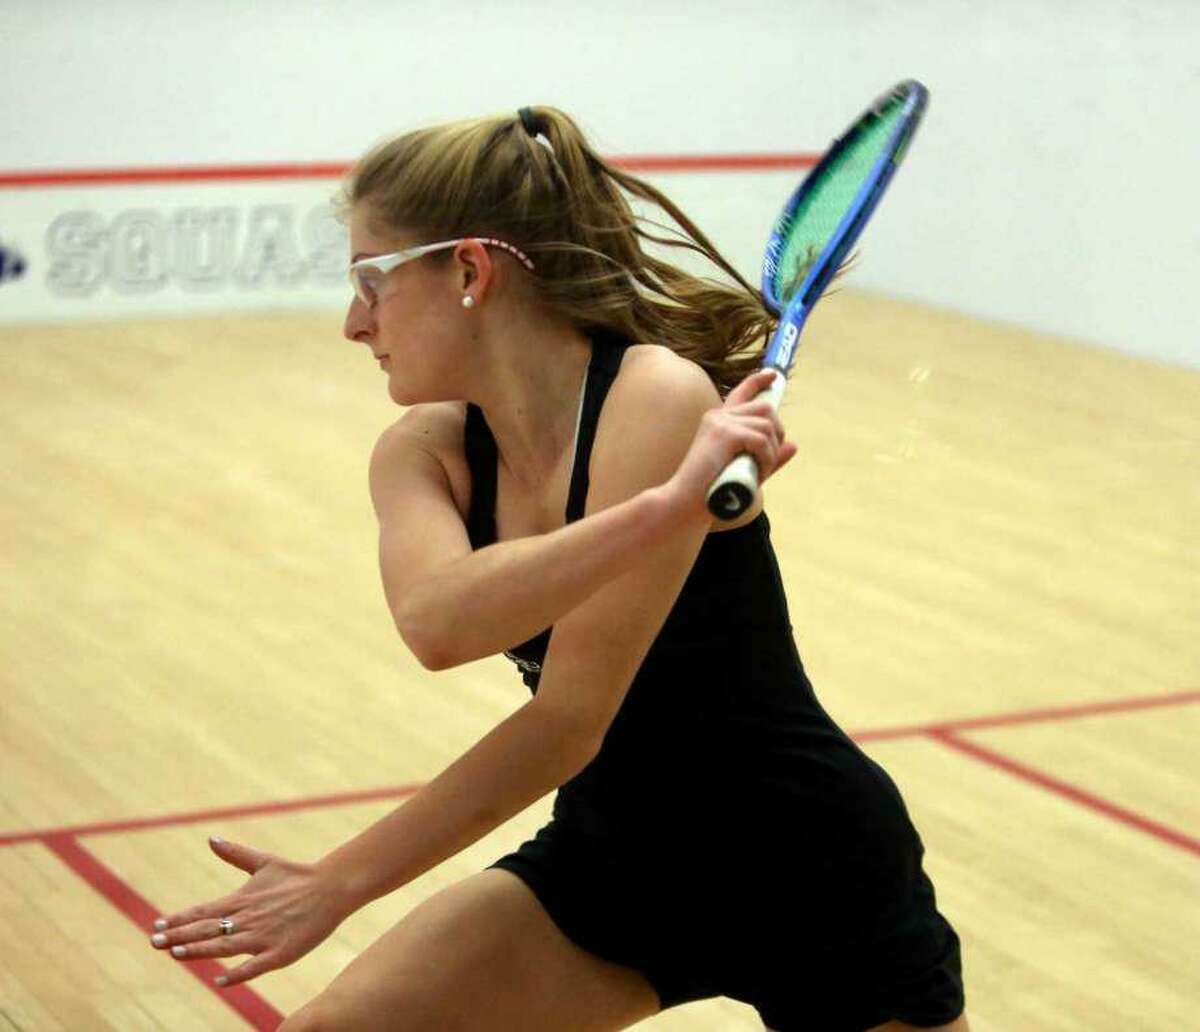 Binney Huffman, who recently concluded her senior year at Greenwich Academy, was selected as a High School All-American by U.S. Squash.